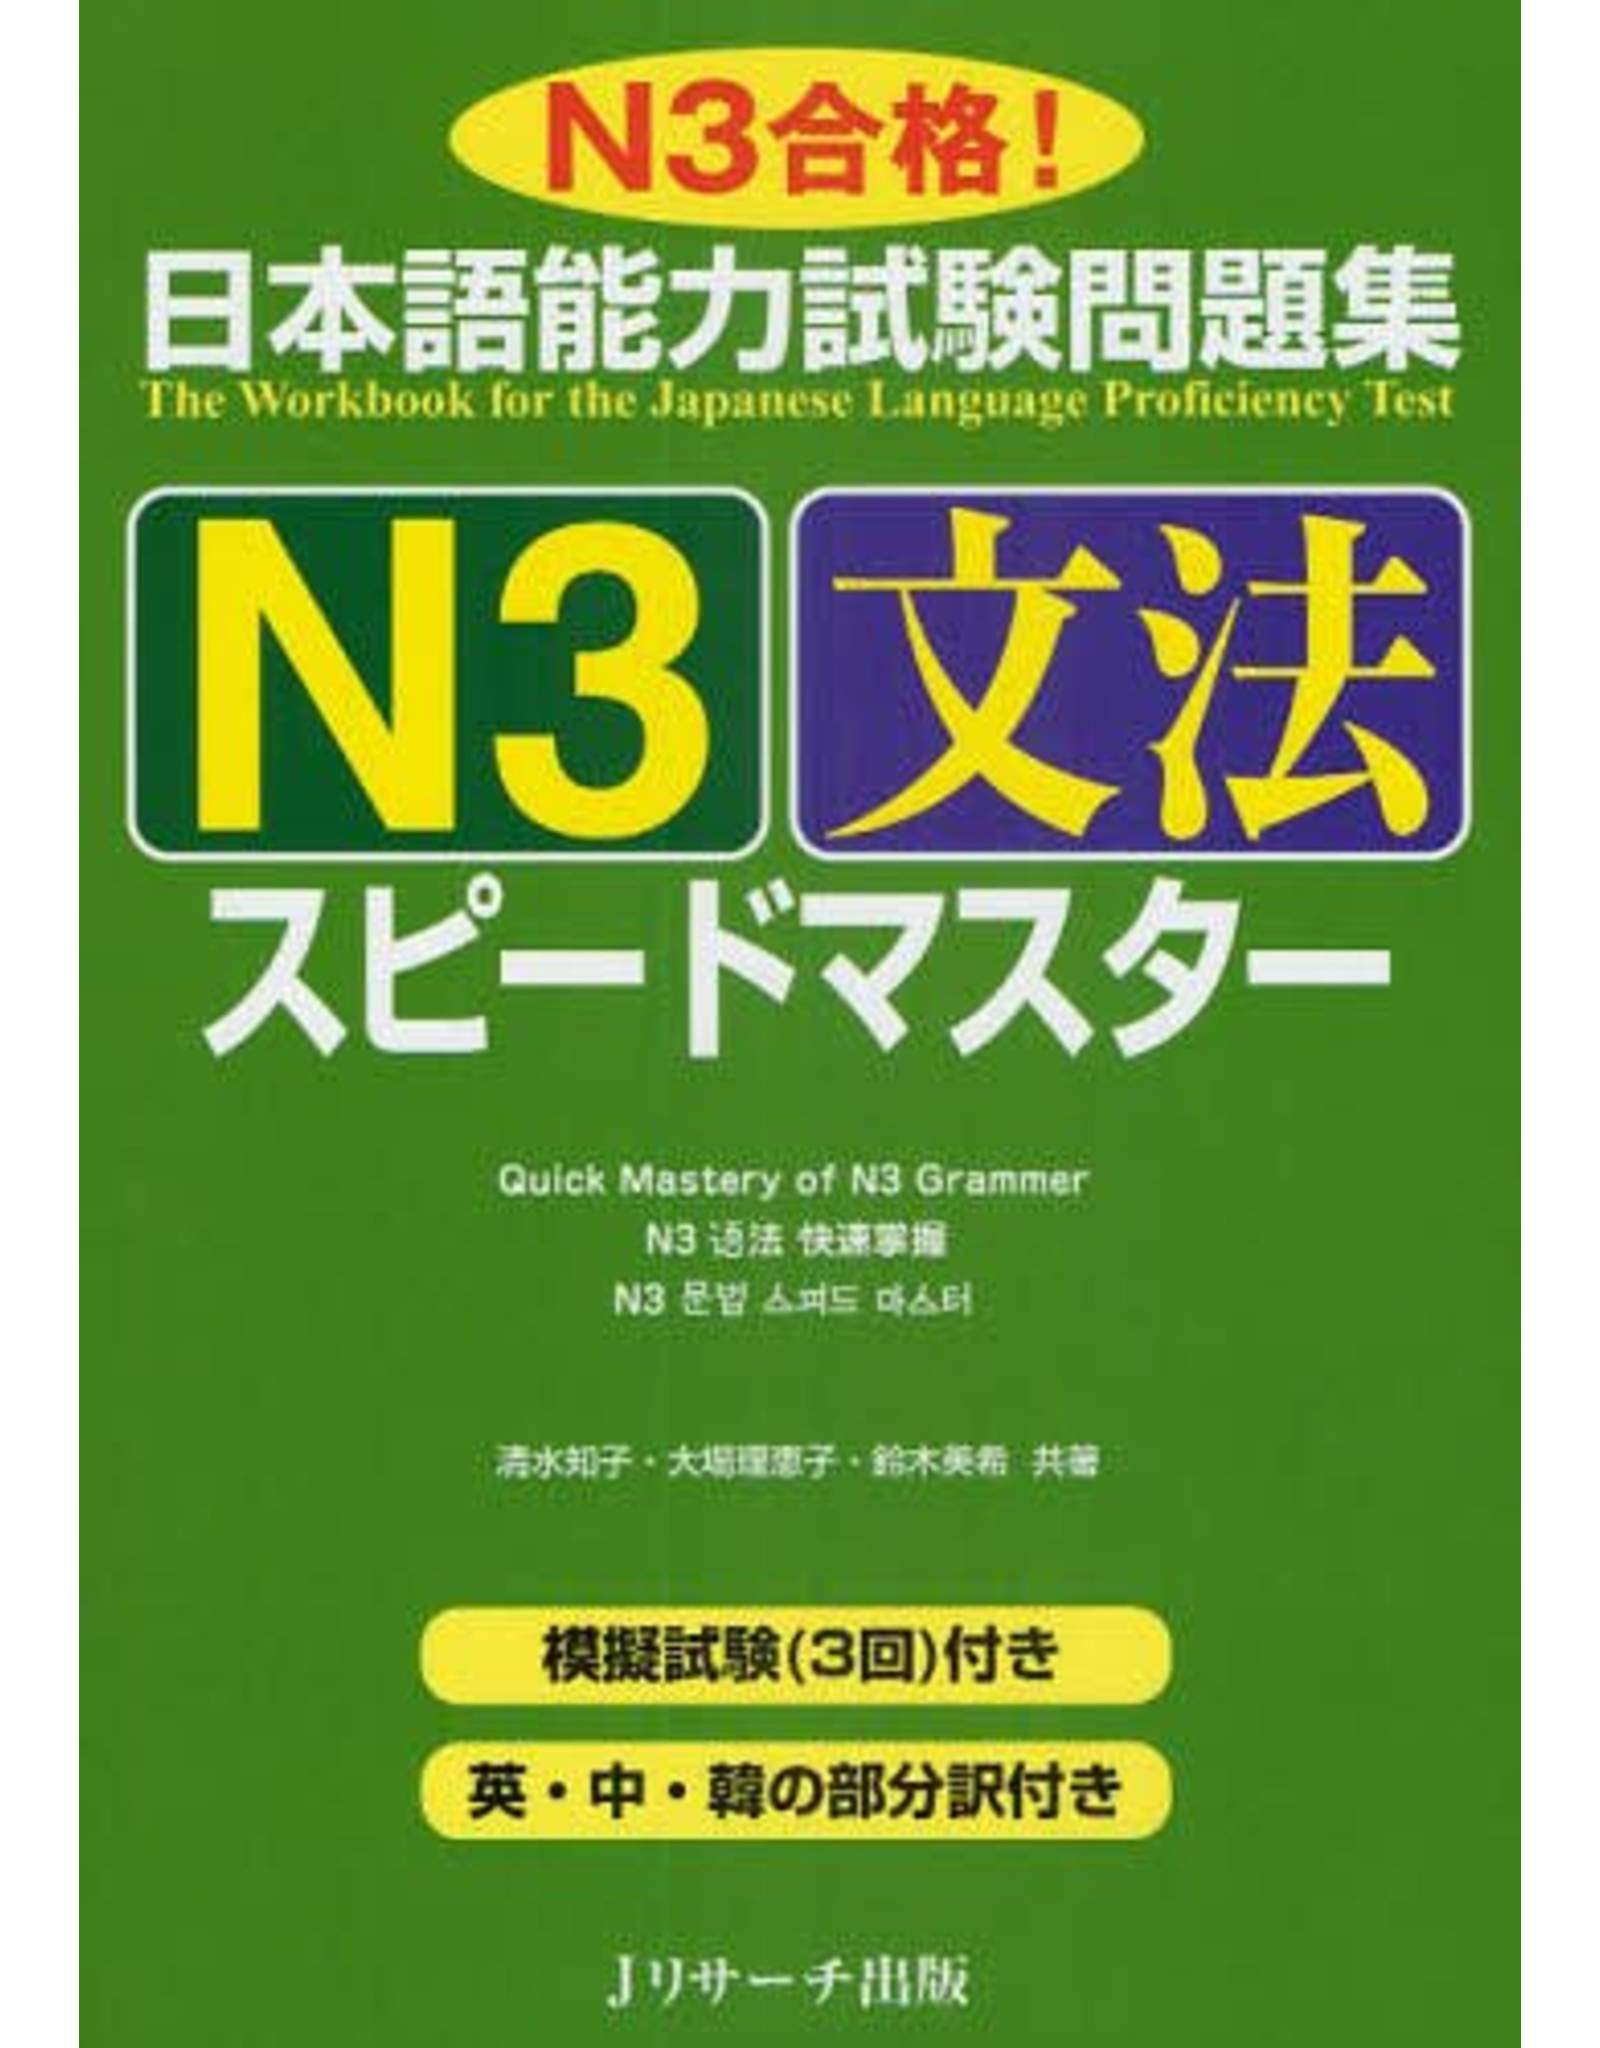 J RESEARCH QUICK MASTERY OF N3 GRAMMER